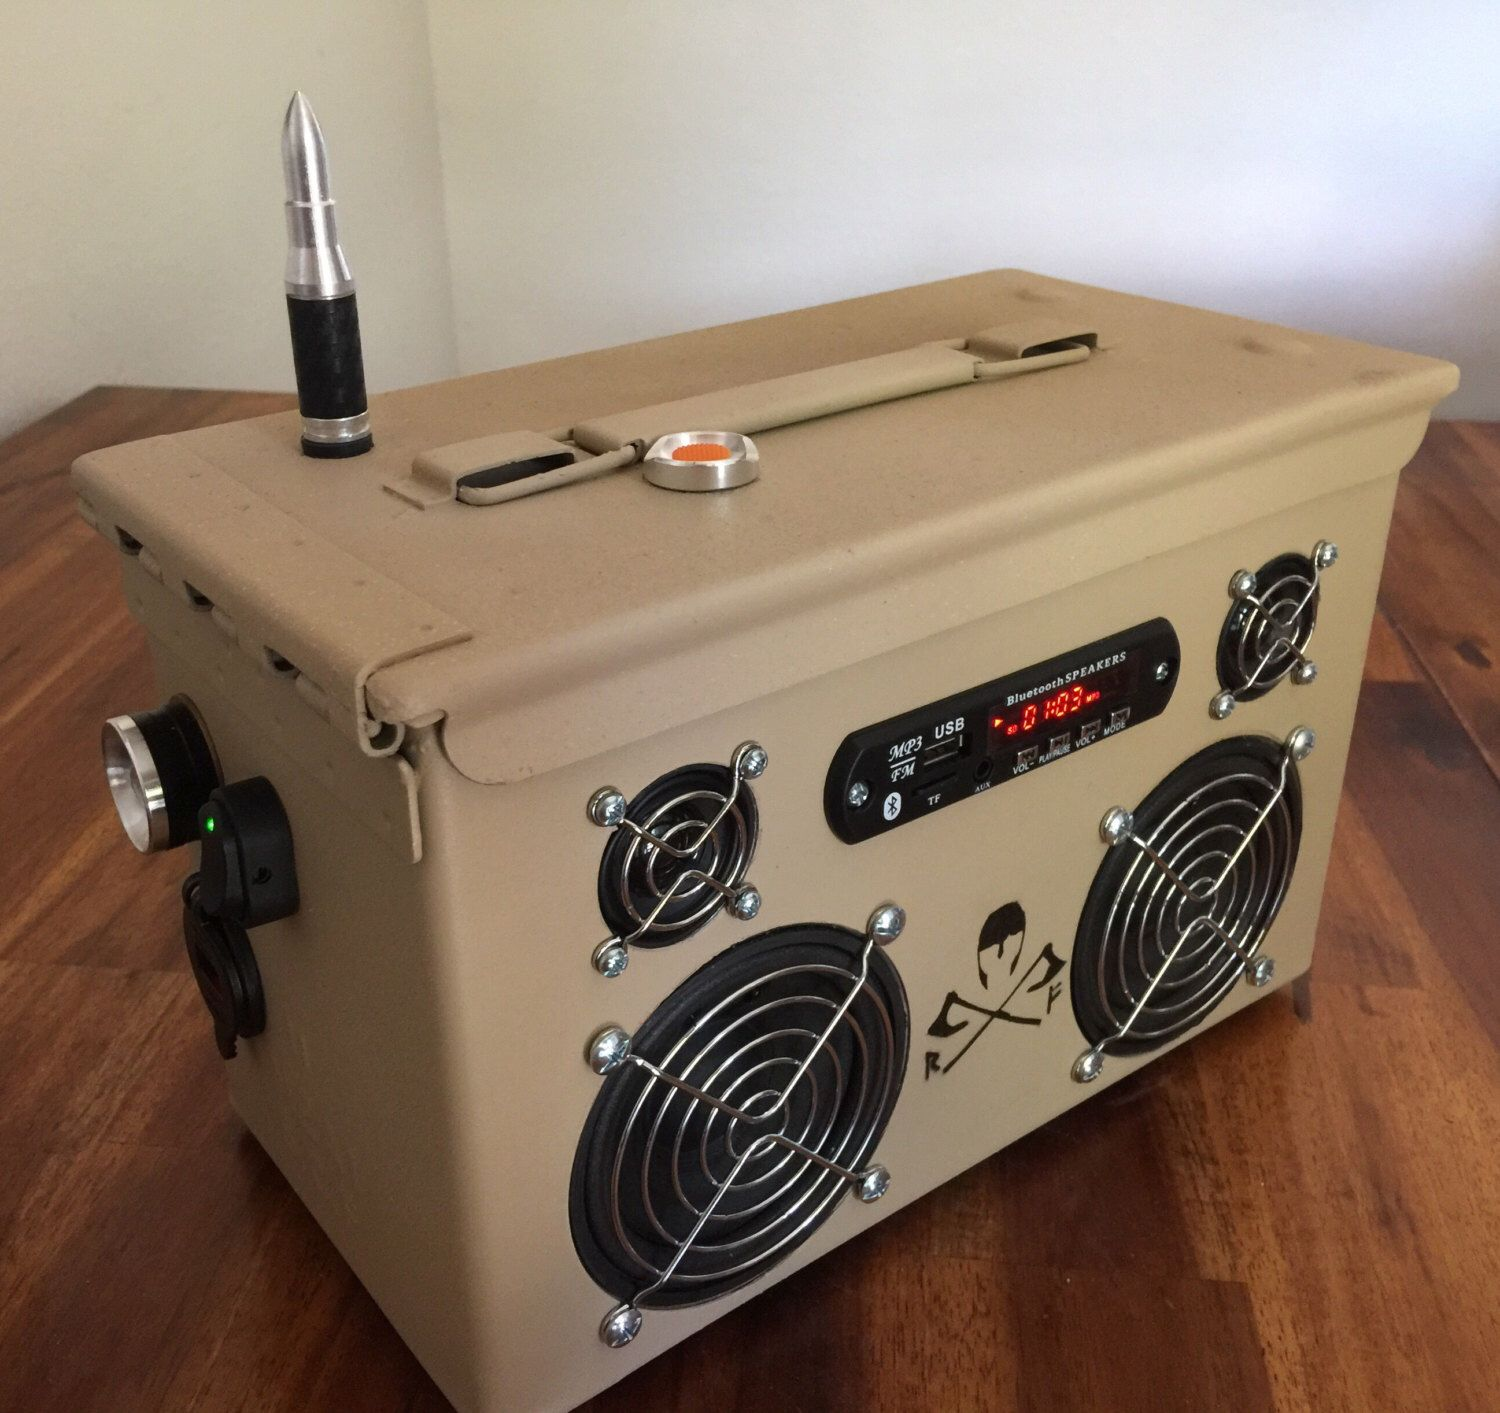 Pin by Frank White on Cool stuff | Ammo cans, Boombox, Diy speakers